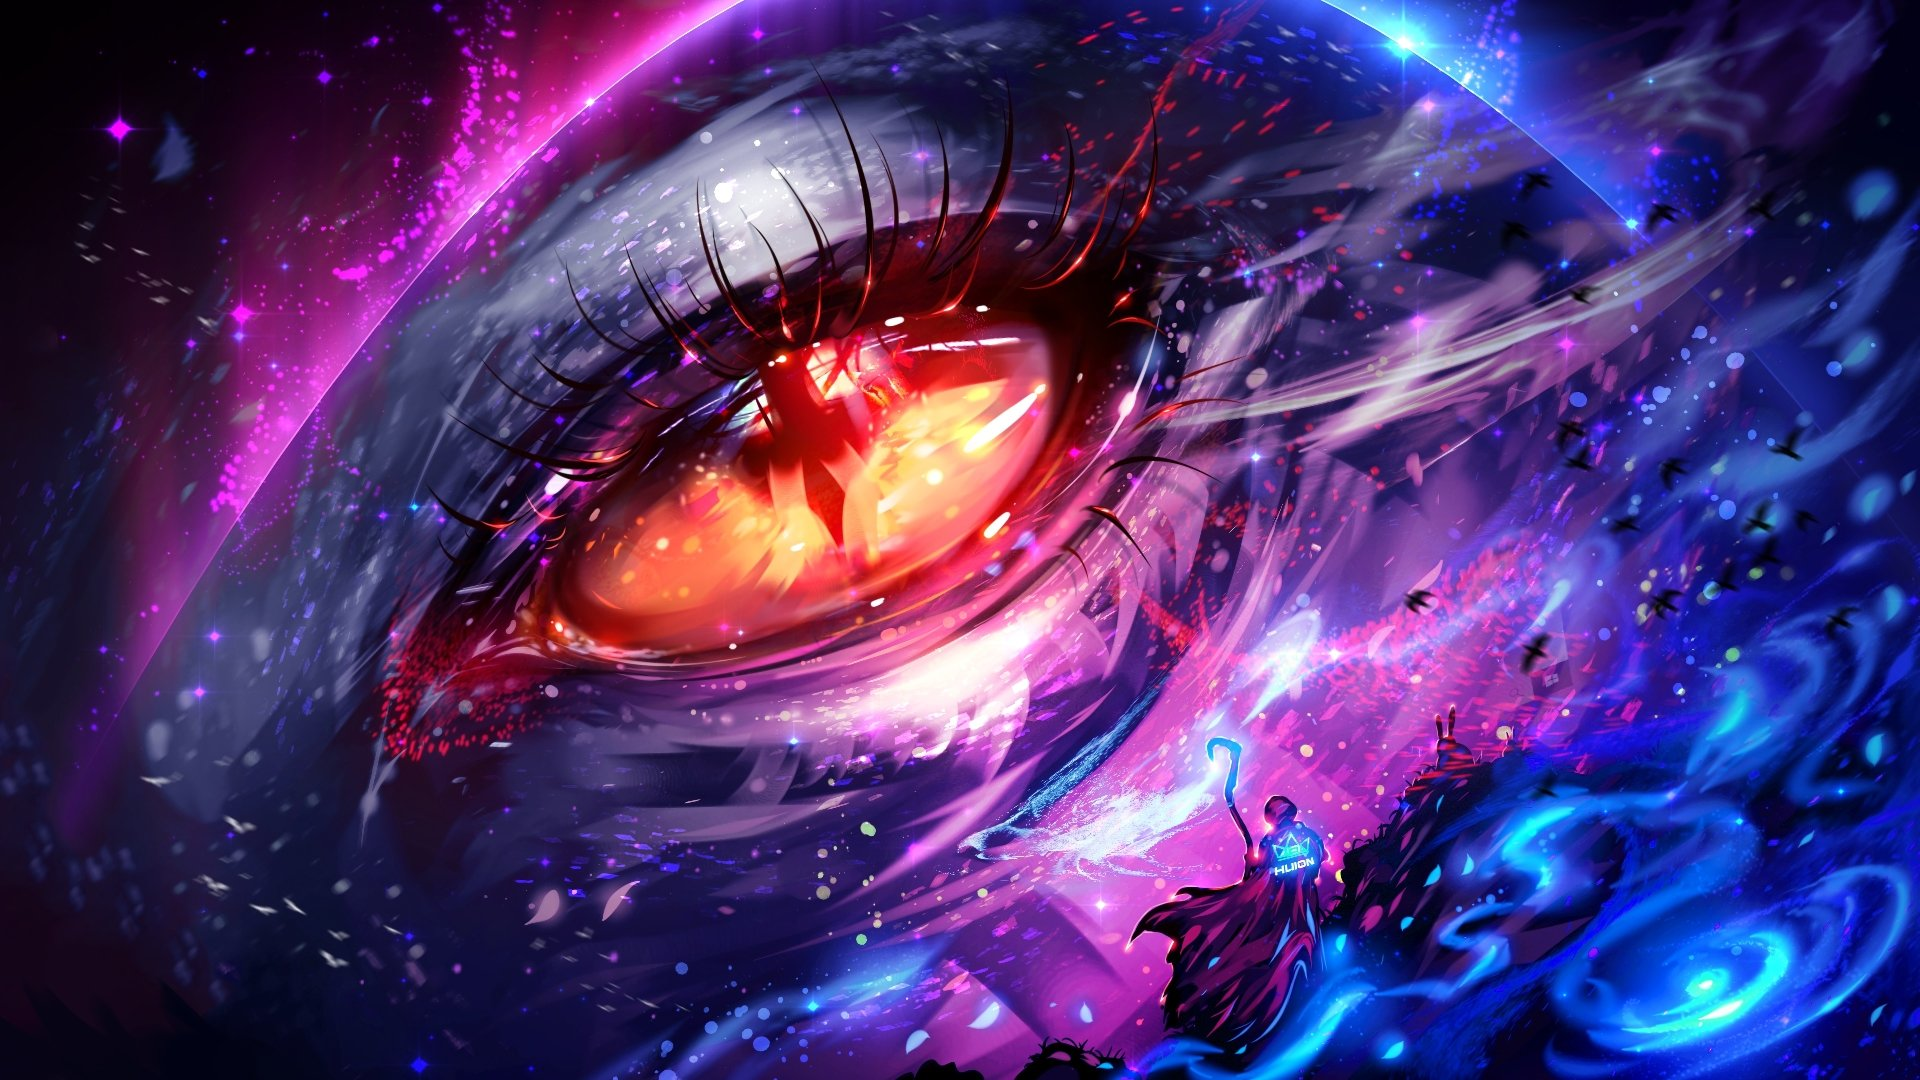 Wallpapers ID:1166463